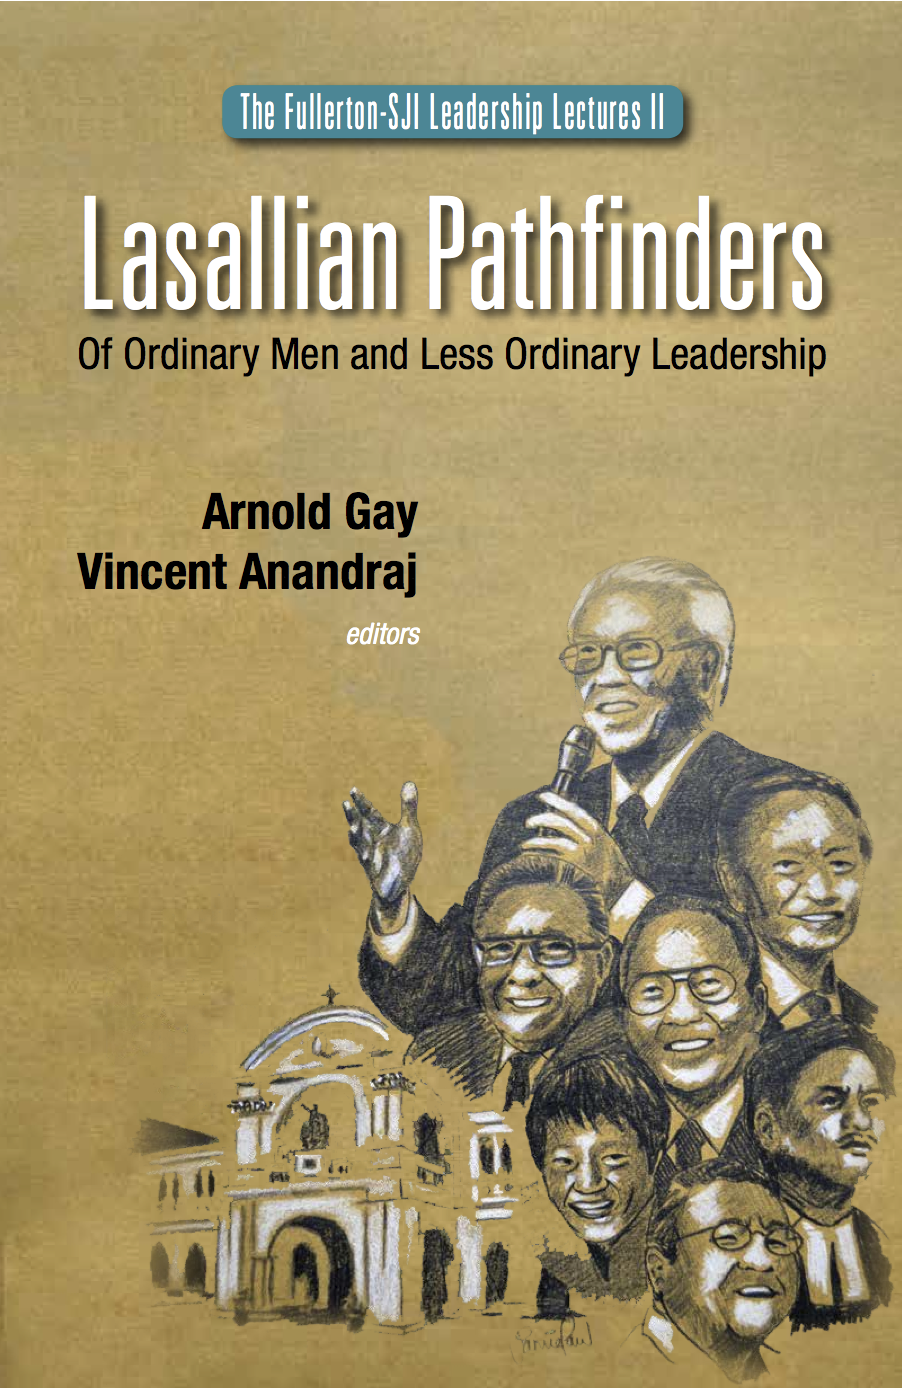 bookcover-LasallianPathfinders.png